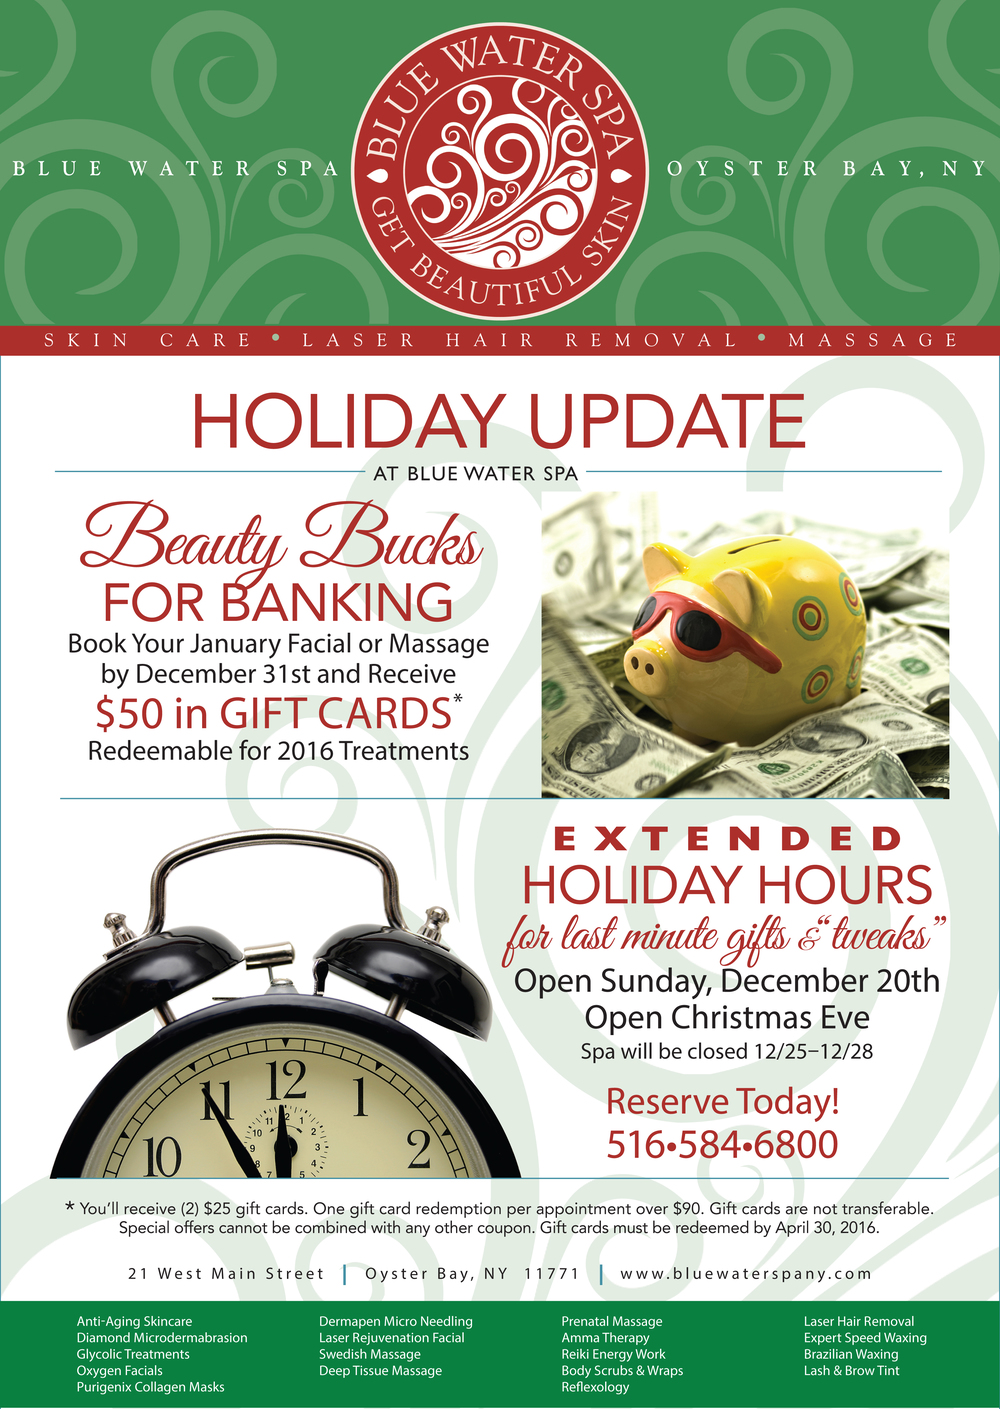 Holidayspecials2015-revised